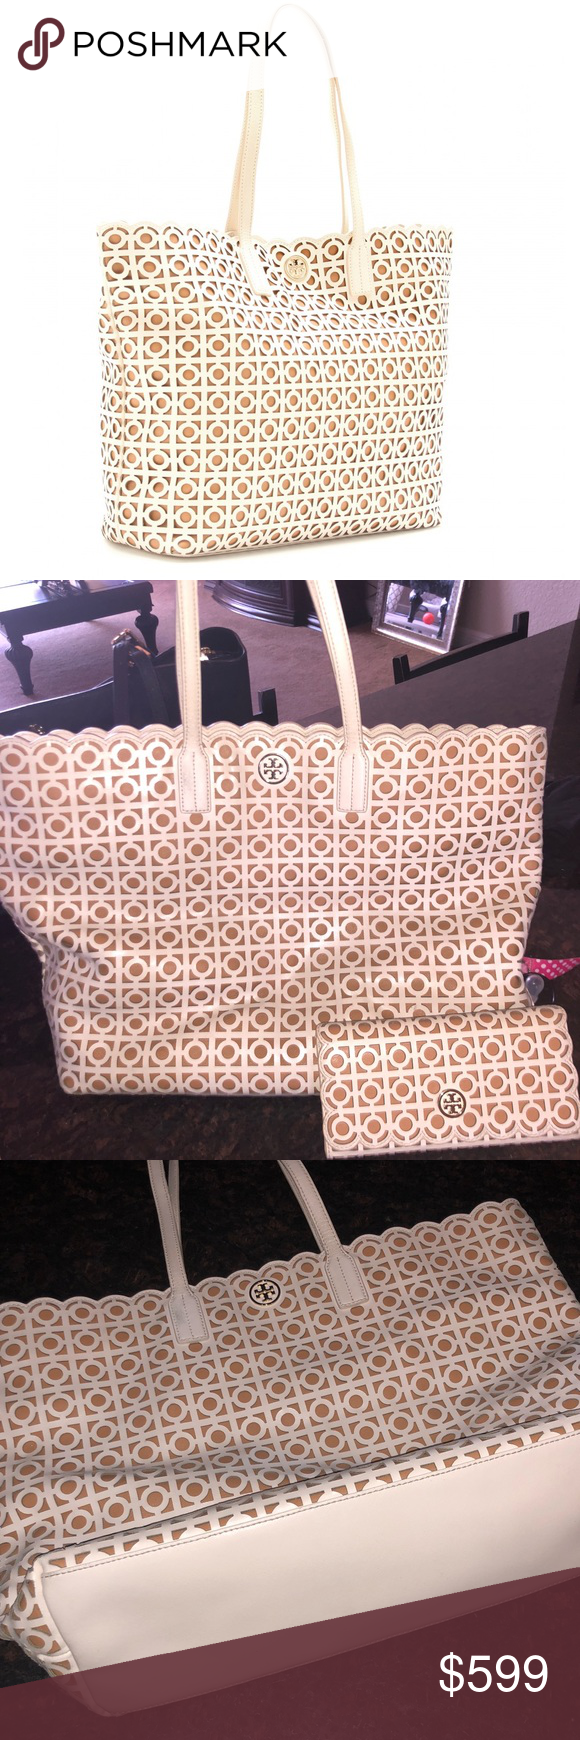 164a55f11d43 Tory Burch Kelsey Laser-Cut East-West Tote A modern interpretation of lace  this